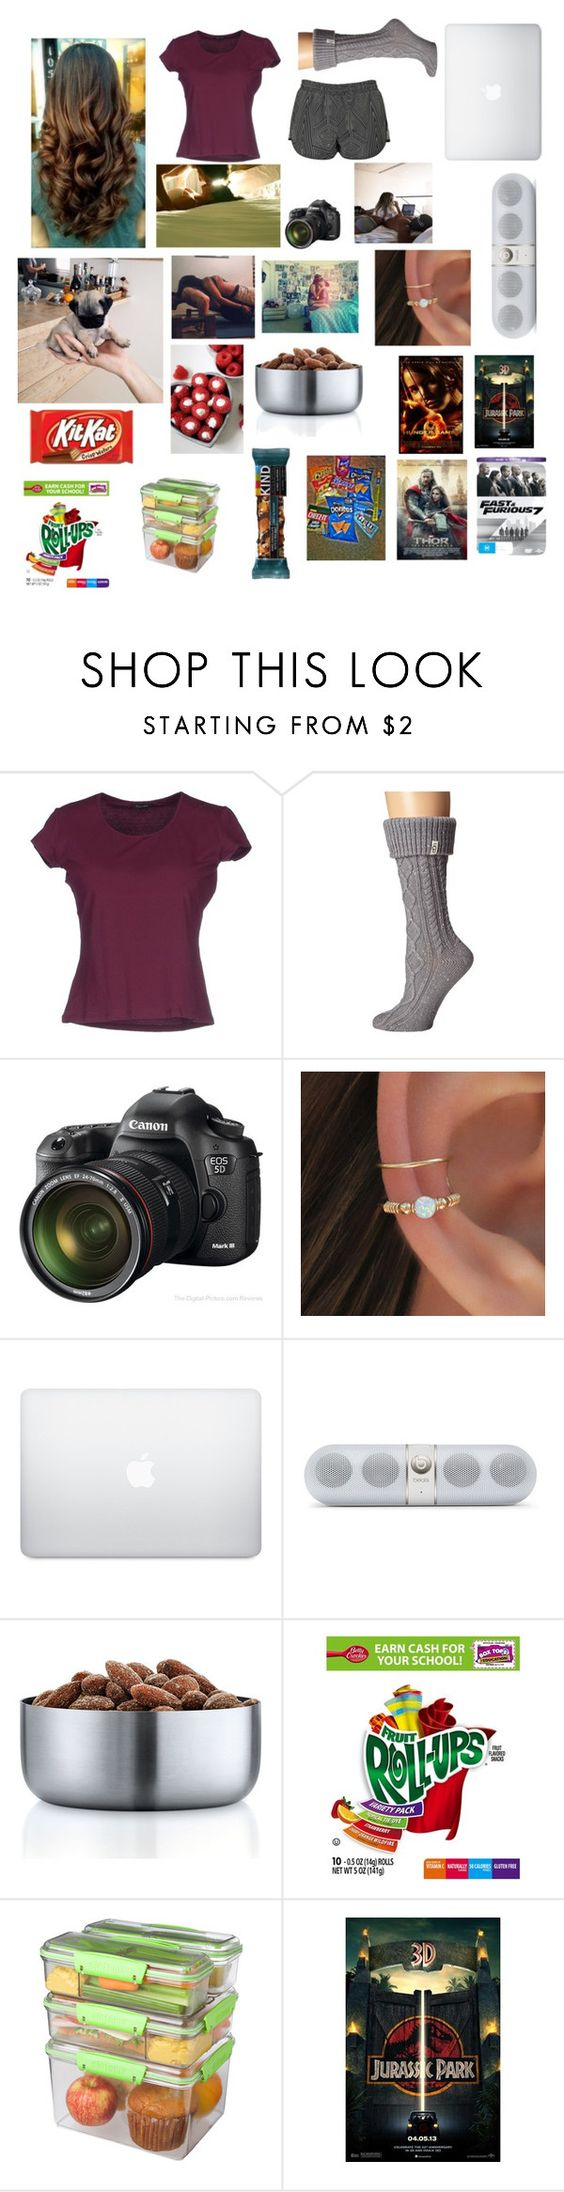 """Untitled #141"" by nashabriann ❤ liked on Polyvore featuring Cruciani, UGG Australia, Eos, blomus, Sistema, Junk Food Clothing and Topshop"